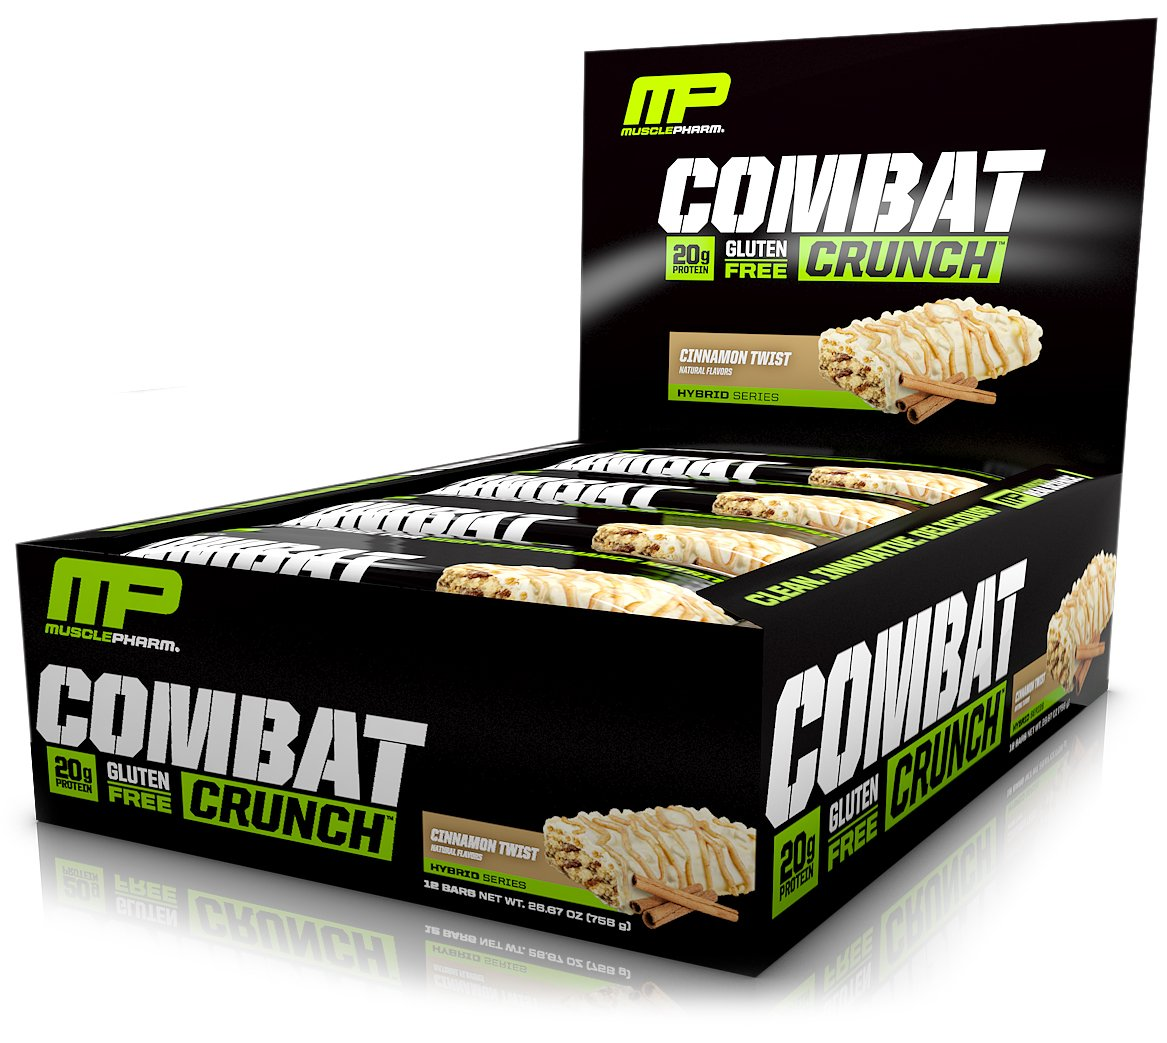 MusclePharm Combat Crunch Protein Bar, Multi-Layered Baked Bar, 20g Protein, Low Sugar, Low Carb, Gluten Free, Cinnamon Twist, 12 Bars